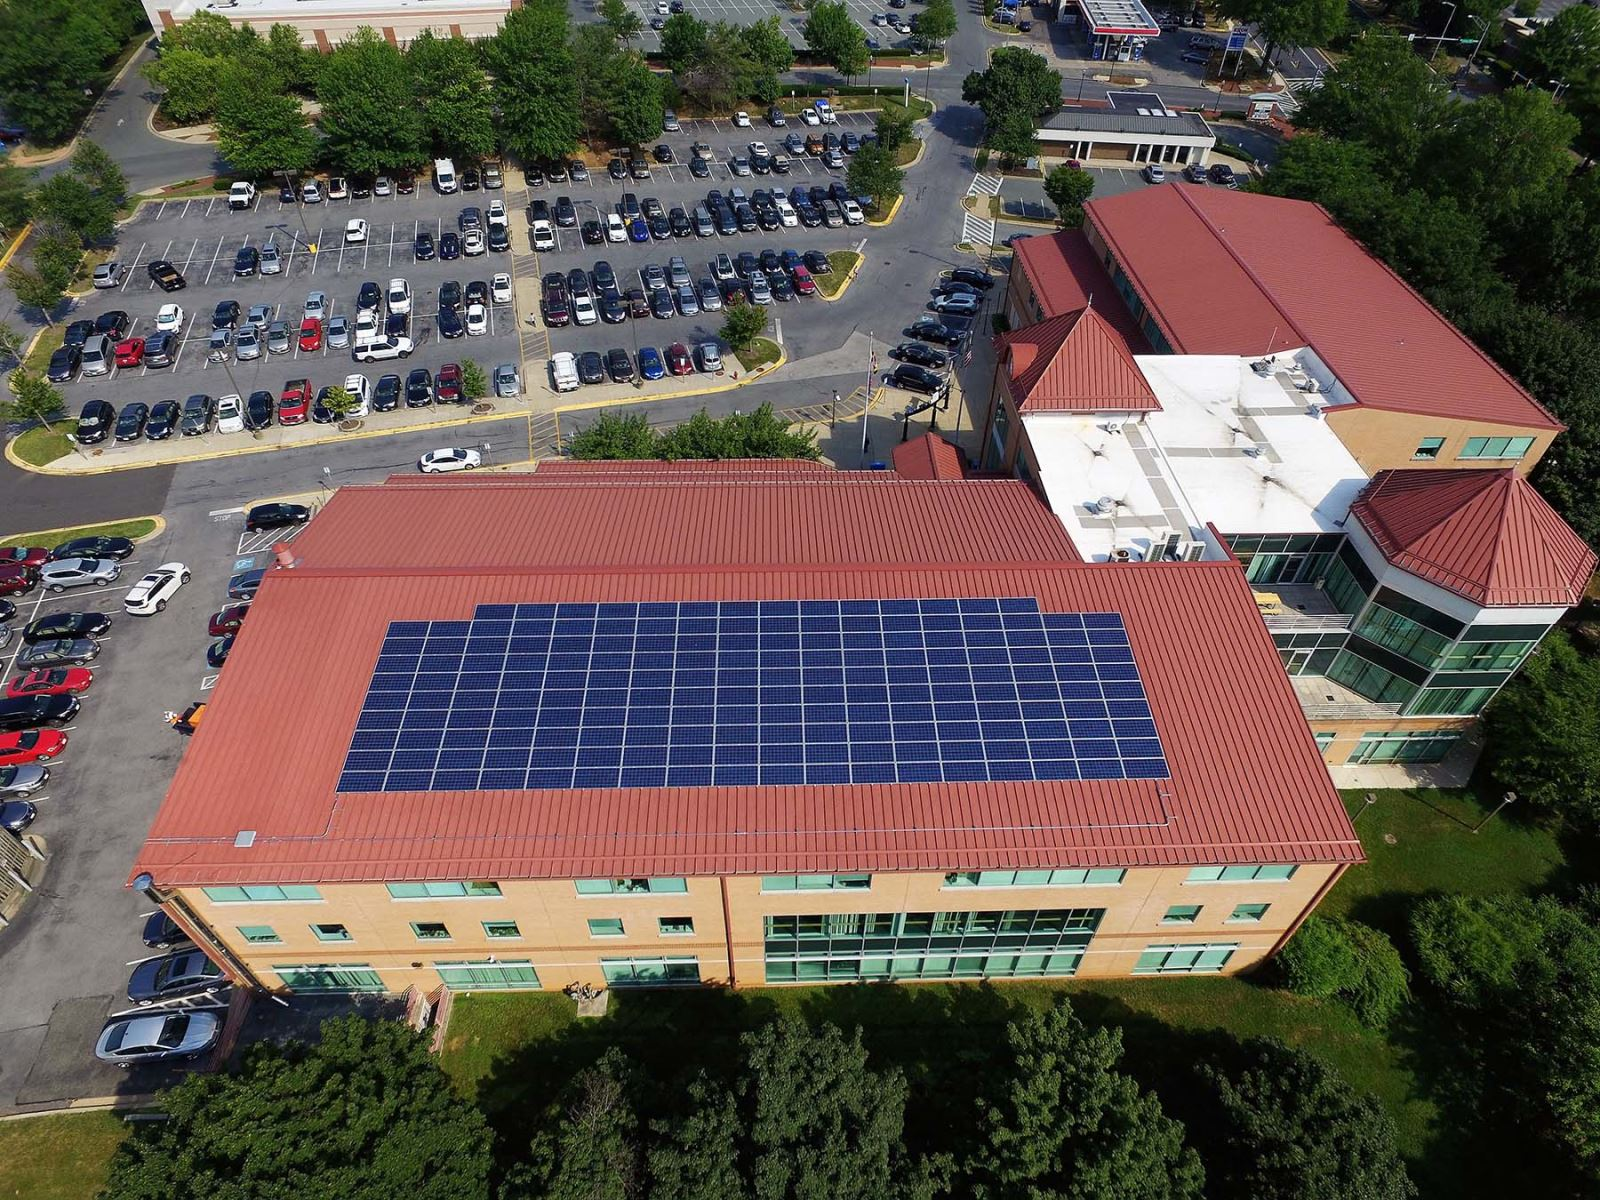 Solar Panels at Upcounty Regional Services Center